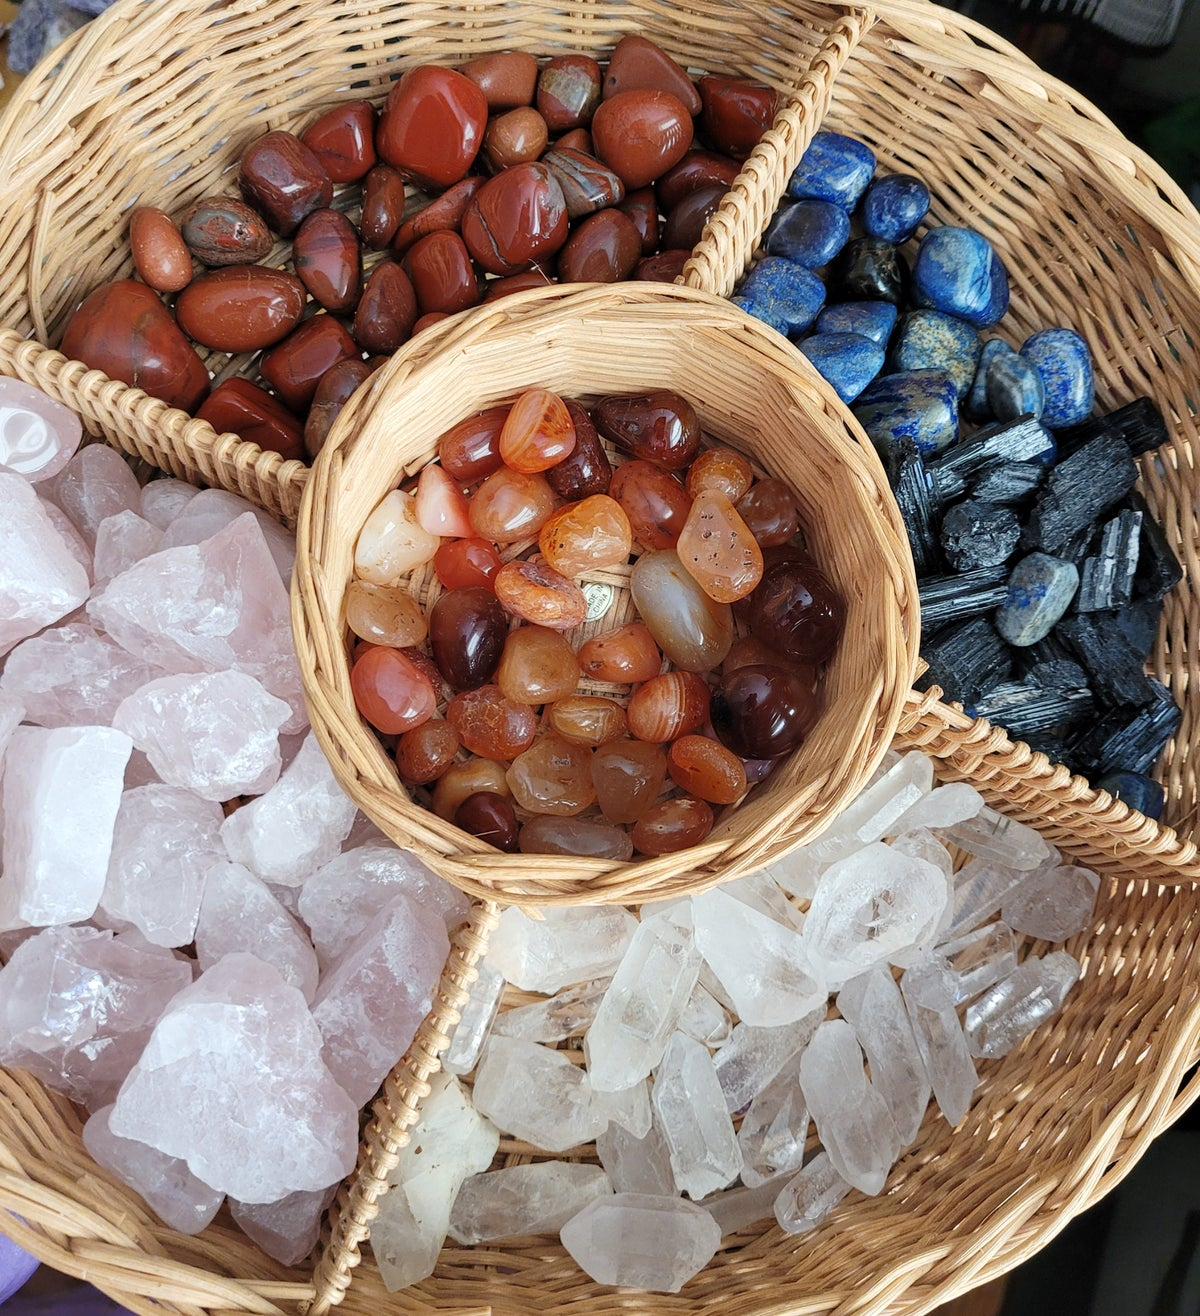 Image of $3 crystals